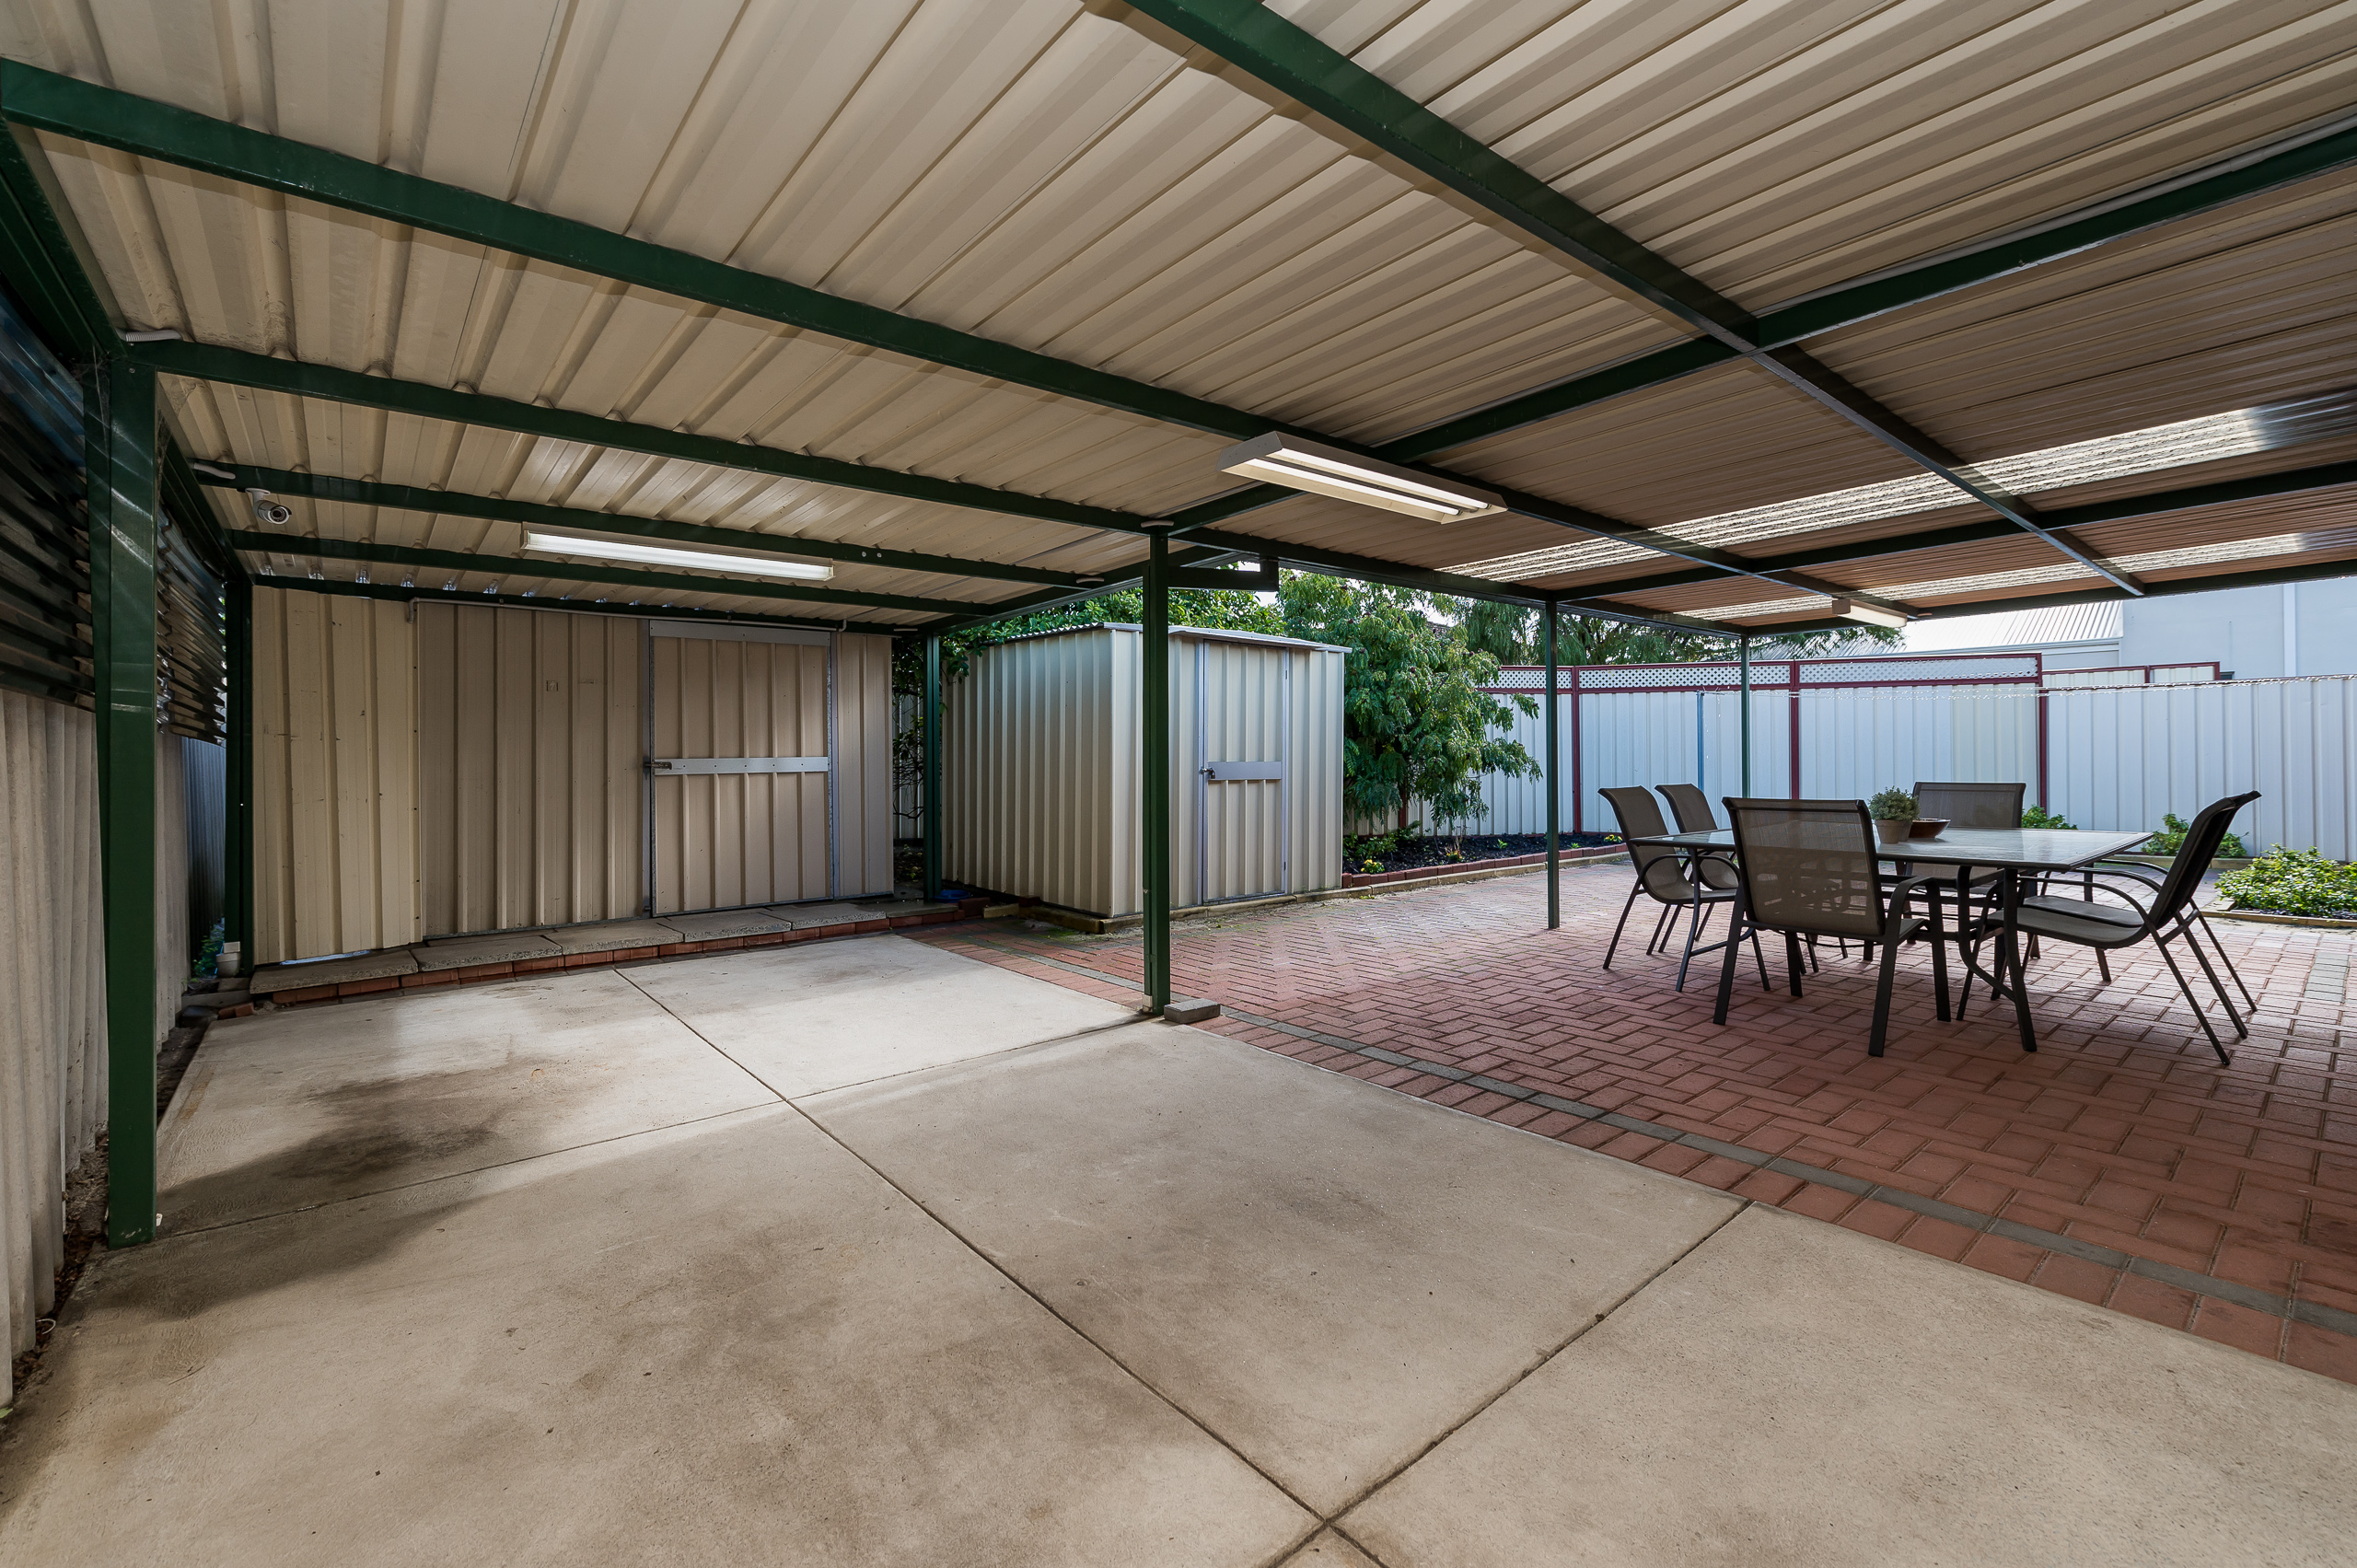 2A Tassell Street Embleton - House For Sale - 23231134 - ACTON Mount Lawley